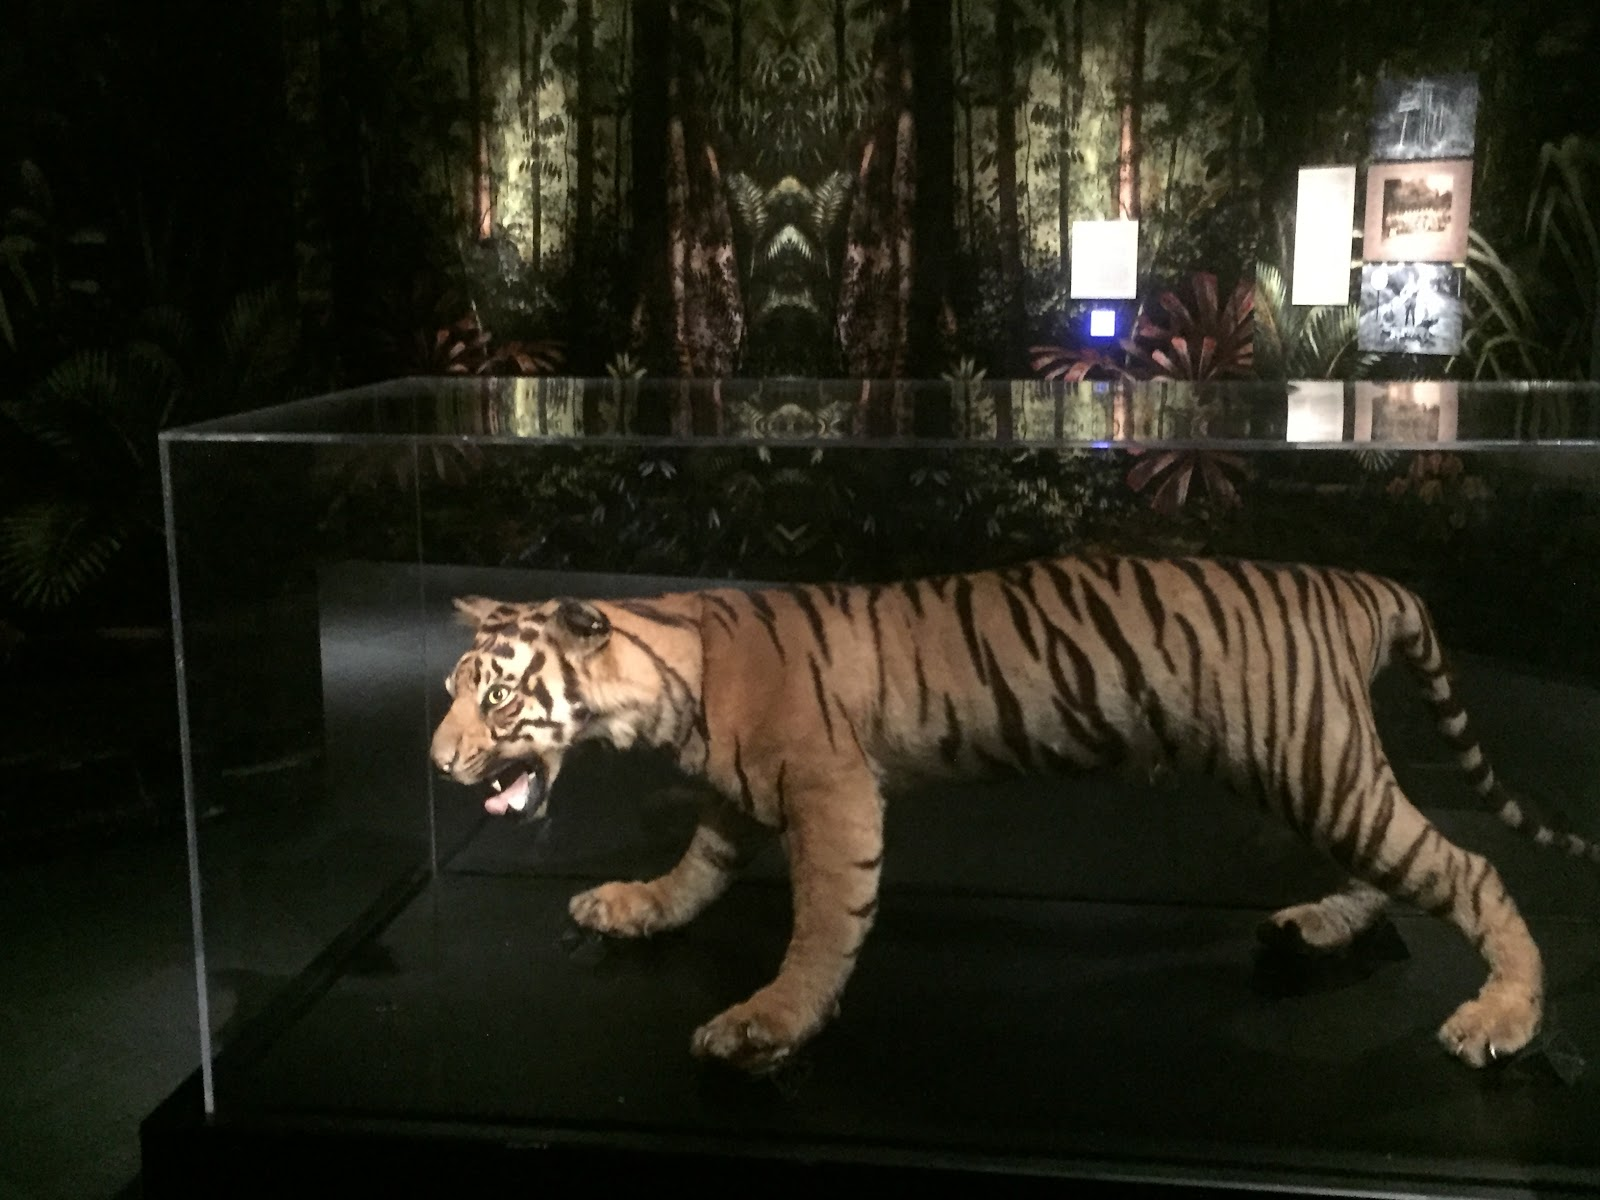 Pose with a lifelike taxidermied tiger!